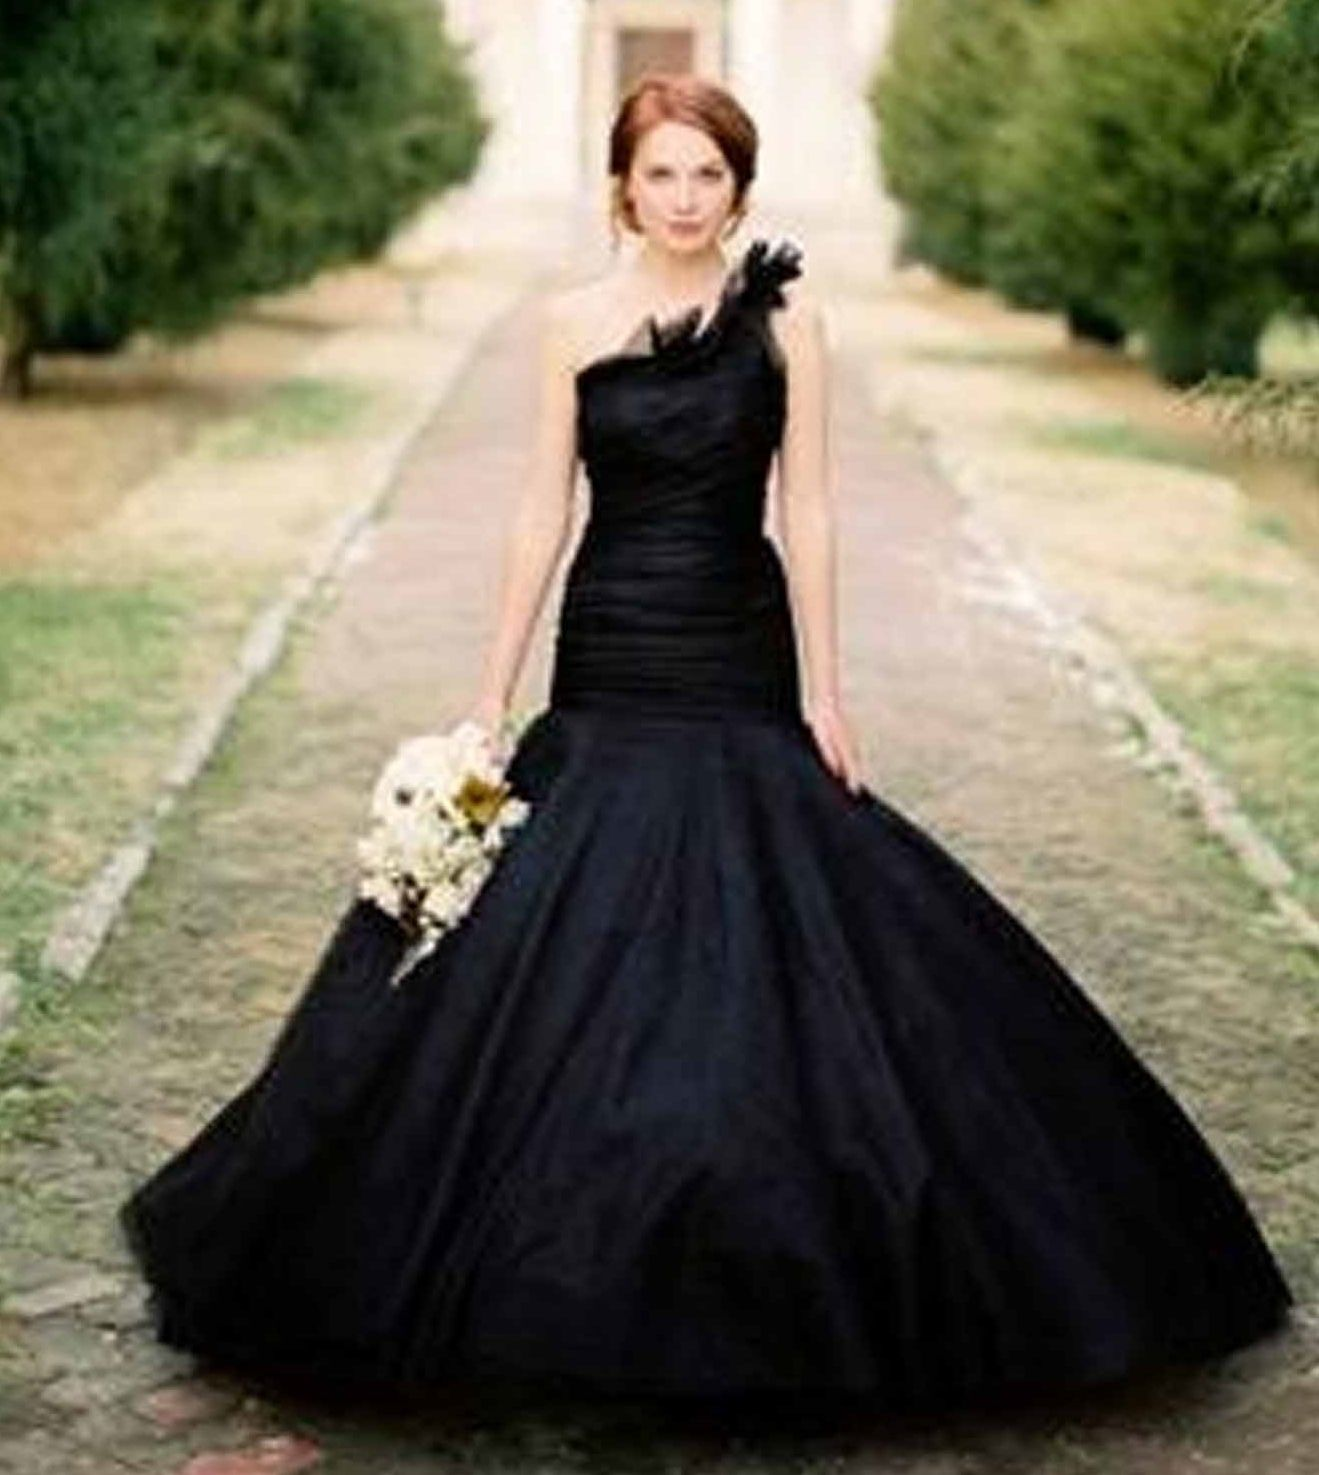 Black Is The New White Gowns For Halloween Weddings Wedding Vera Wang Photographed By Jose Villa Love Unconventional